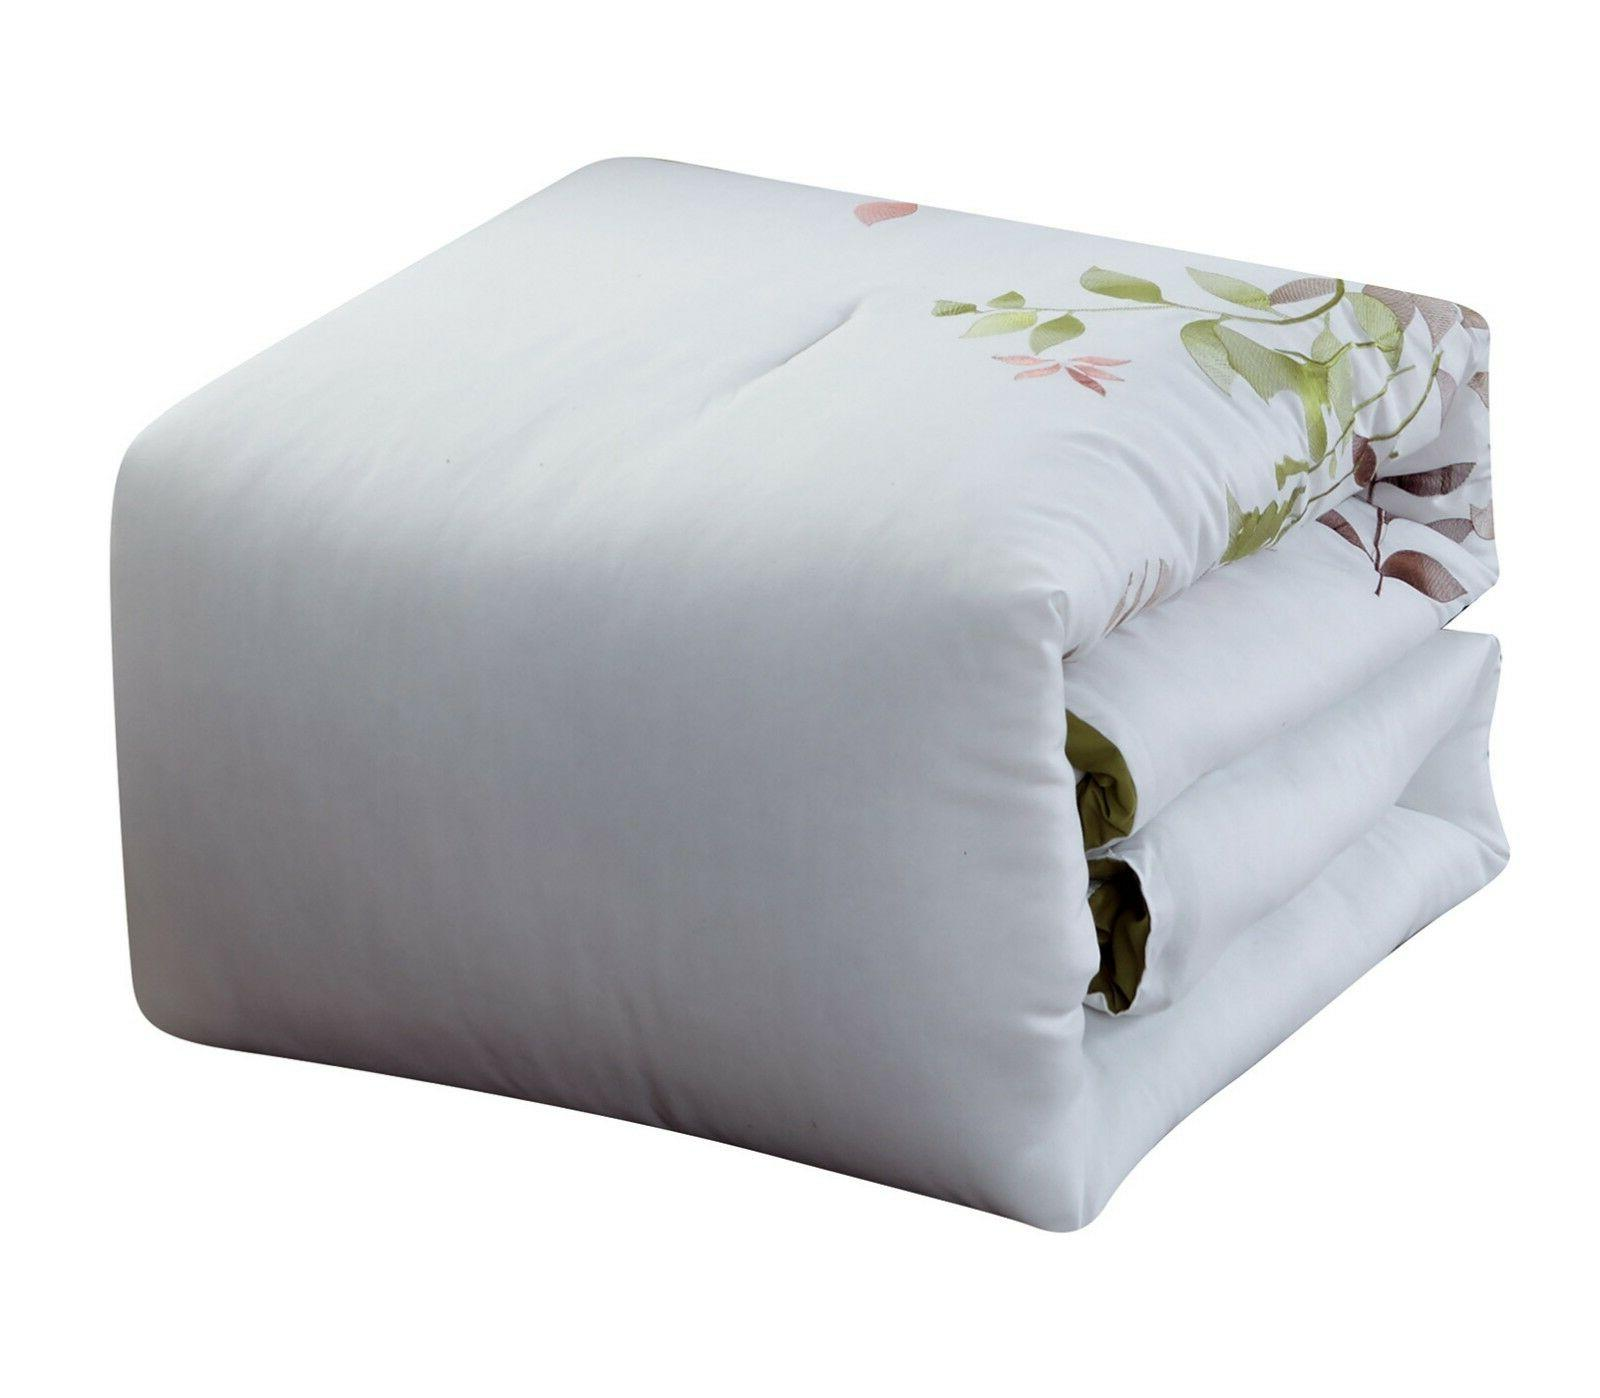 Premium Comforter 100% Polyester, Pieces, Bed in a